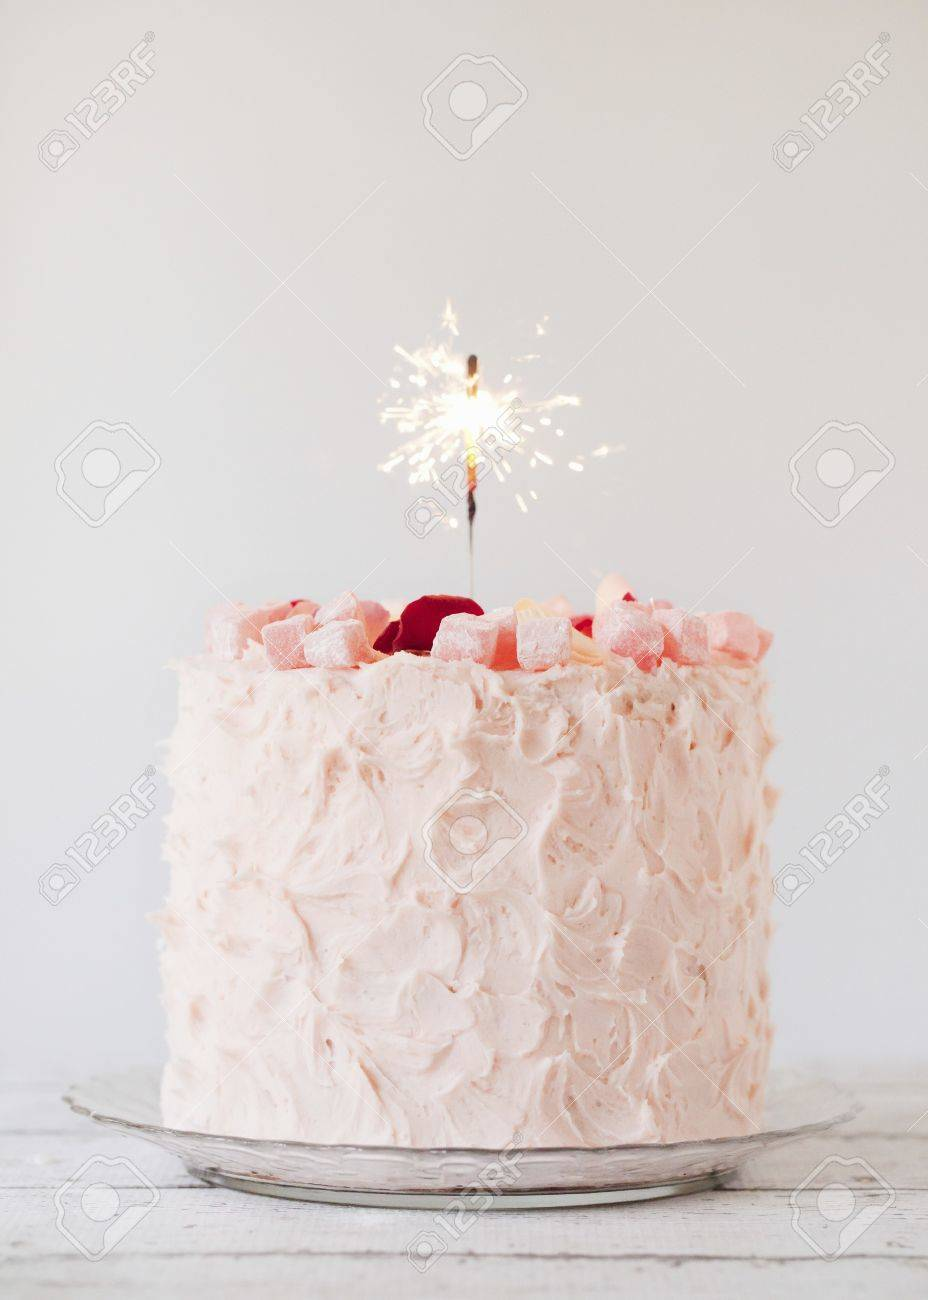 Surprising Turkish Delight Layer Cake With A Sparkler Candle Stock Photo Funny Birthday Cards Online Alyptdamsfinfo